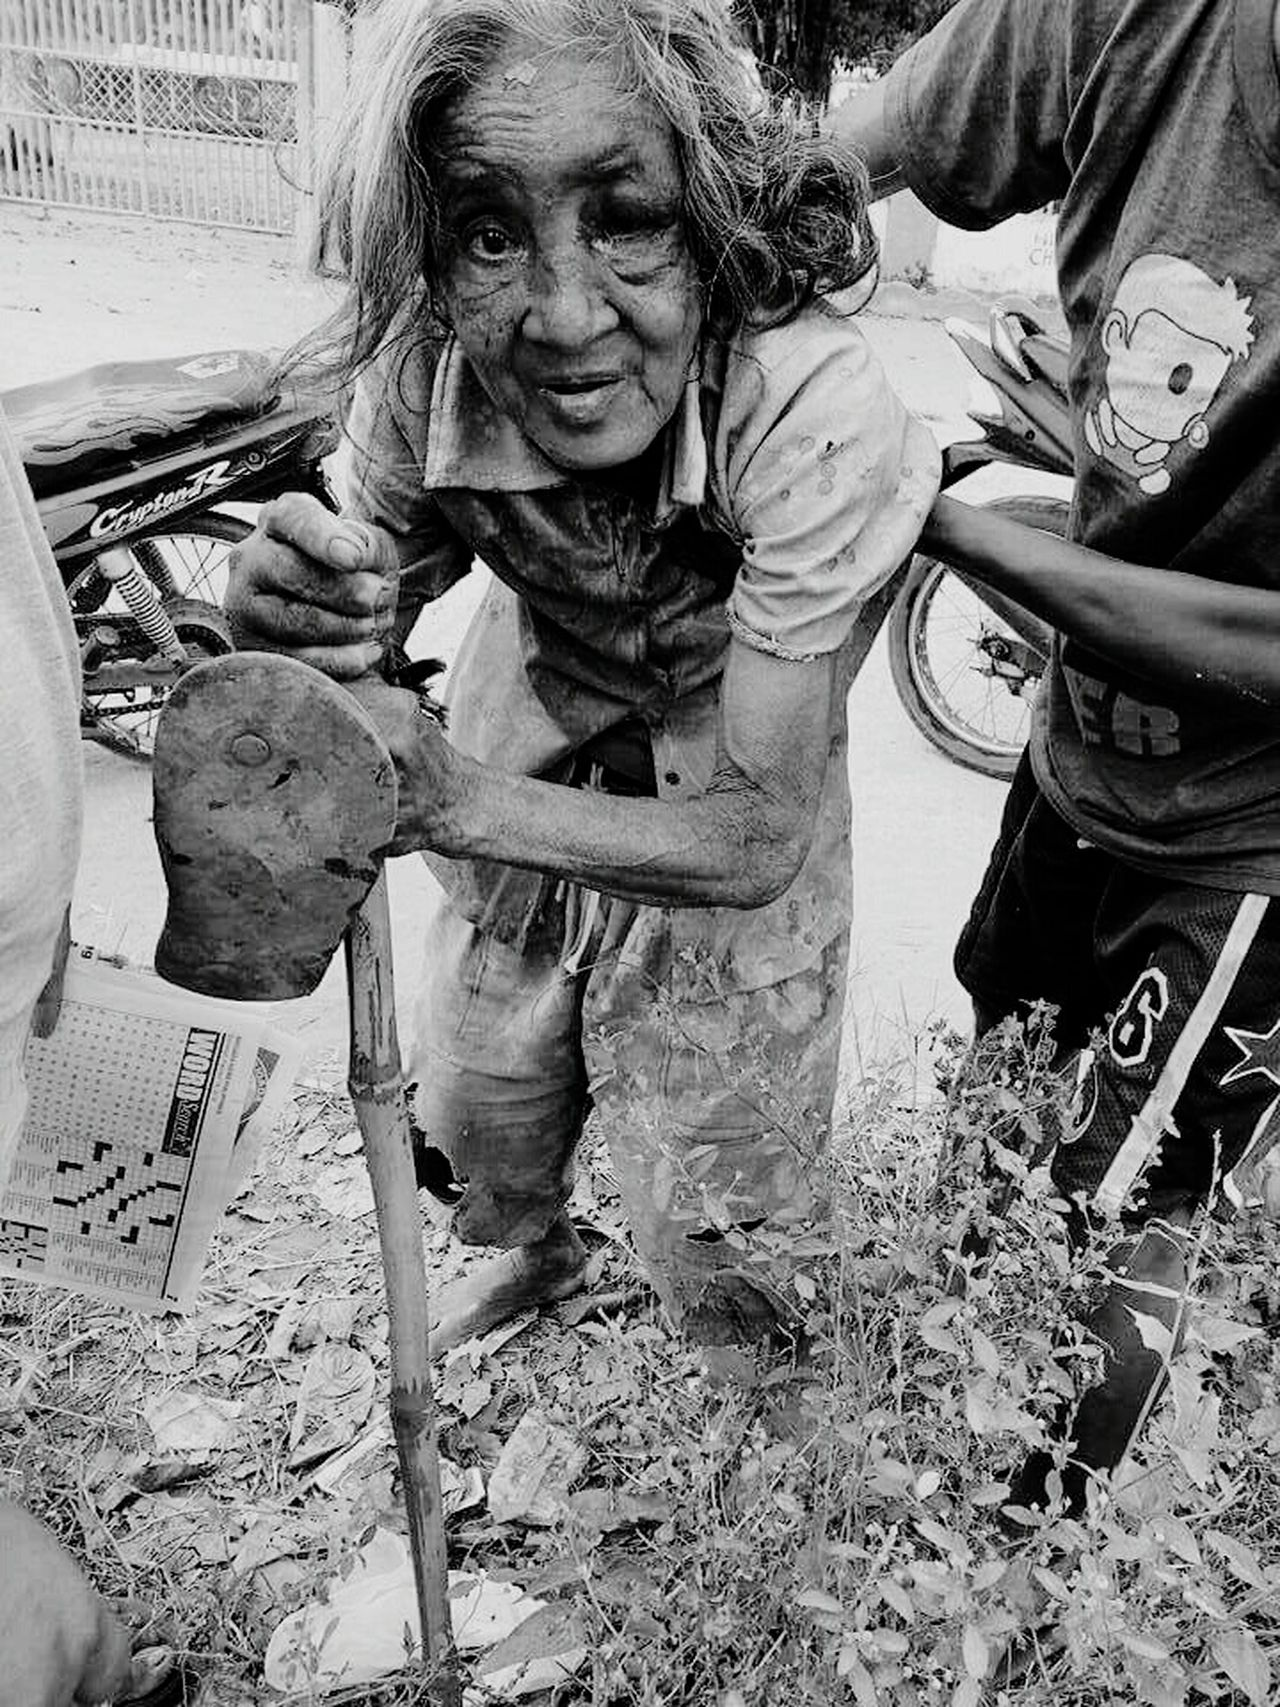 Struggle For Life Needs Love Needs Care Needs Help Needs Homes A Mother's Storygodbless this oldwoman Truestory Daretostare Streetphotography Eyeem Philippines